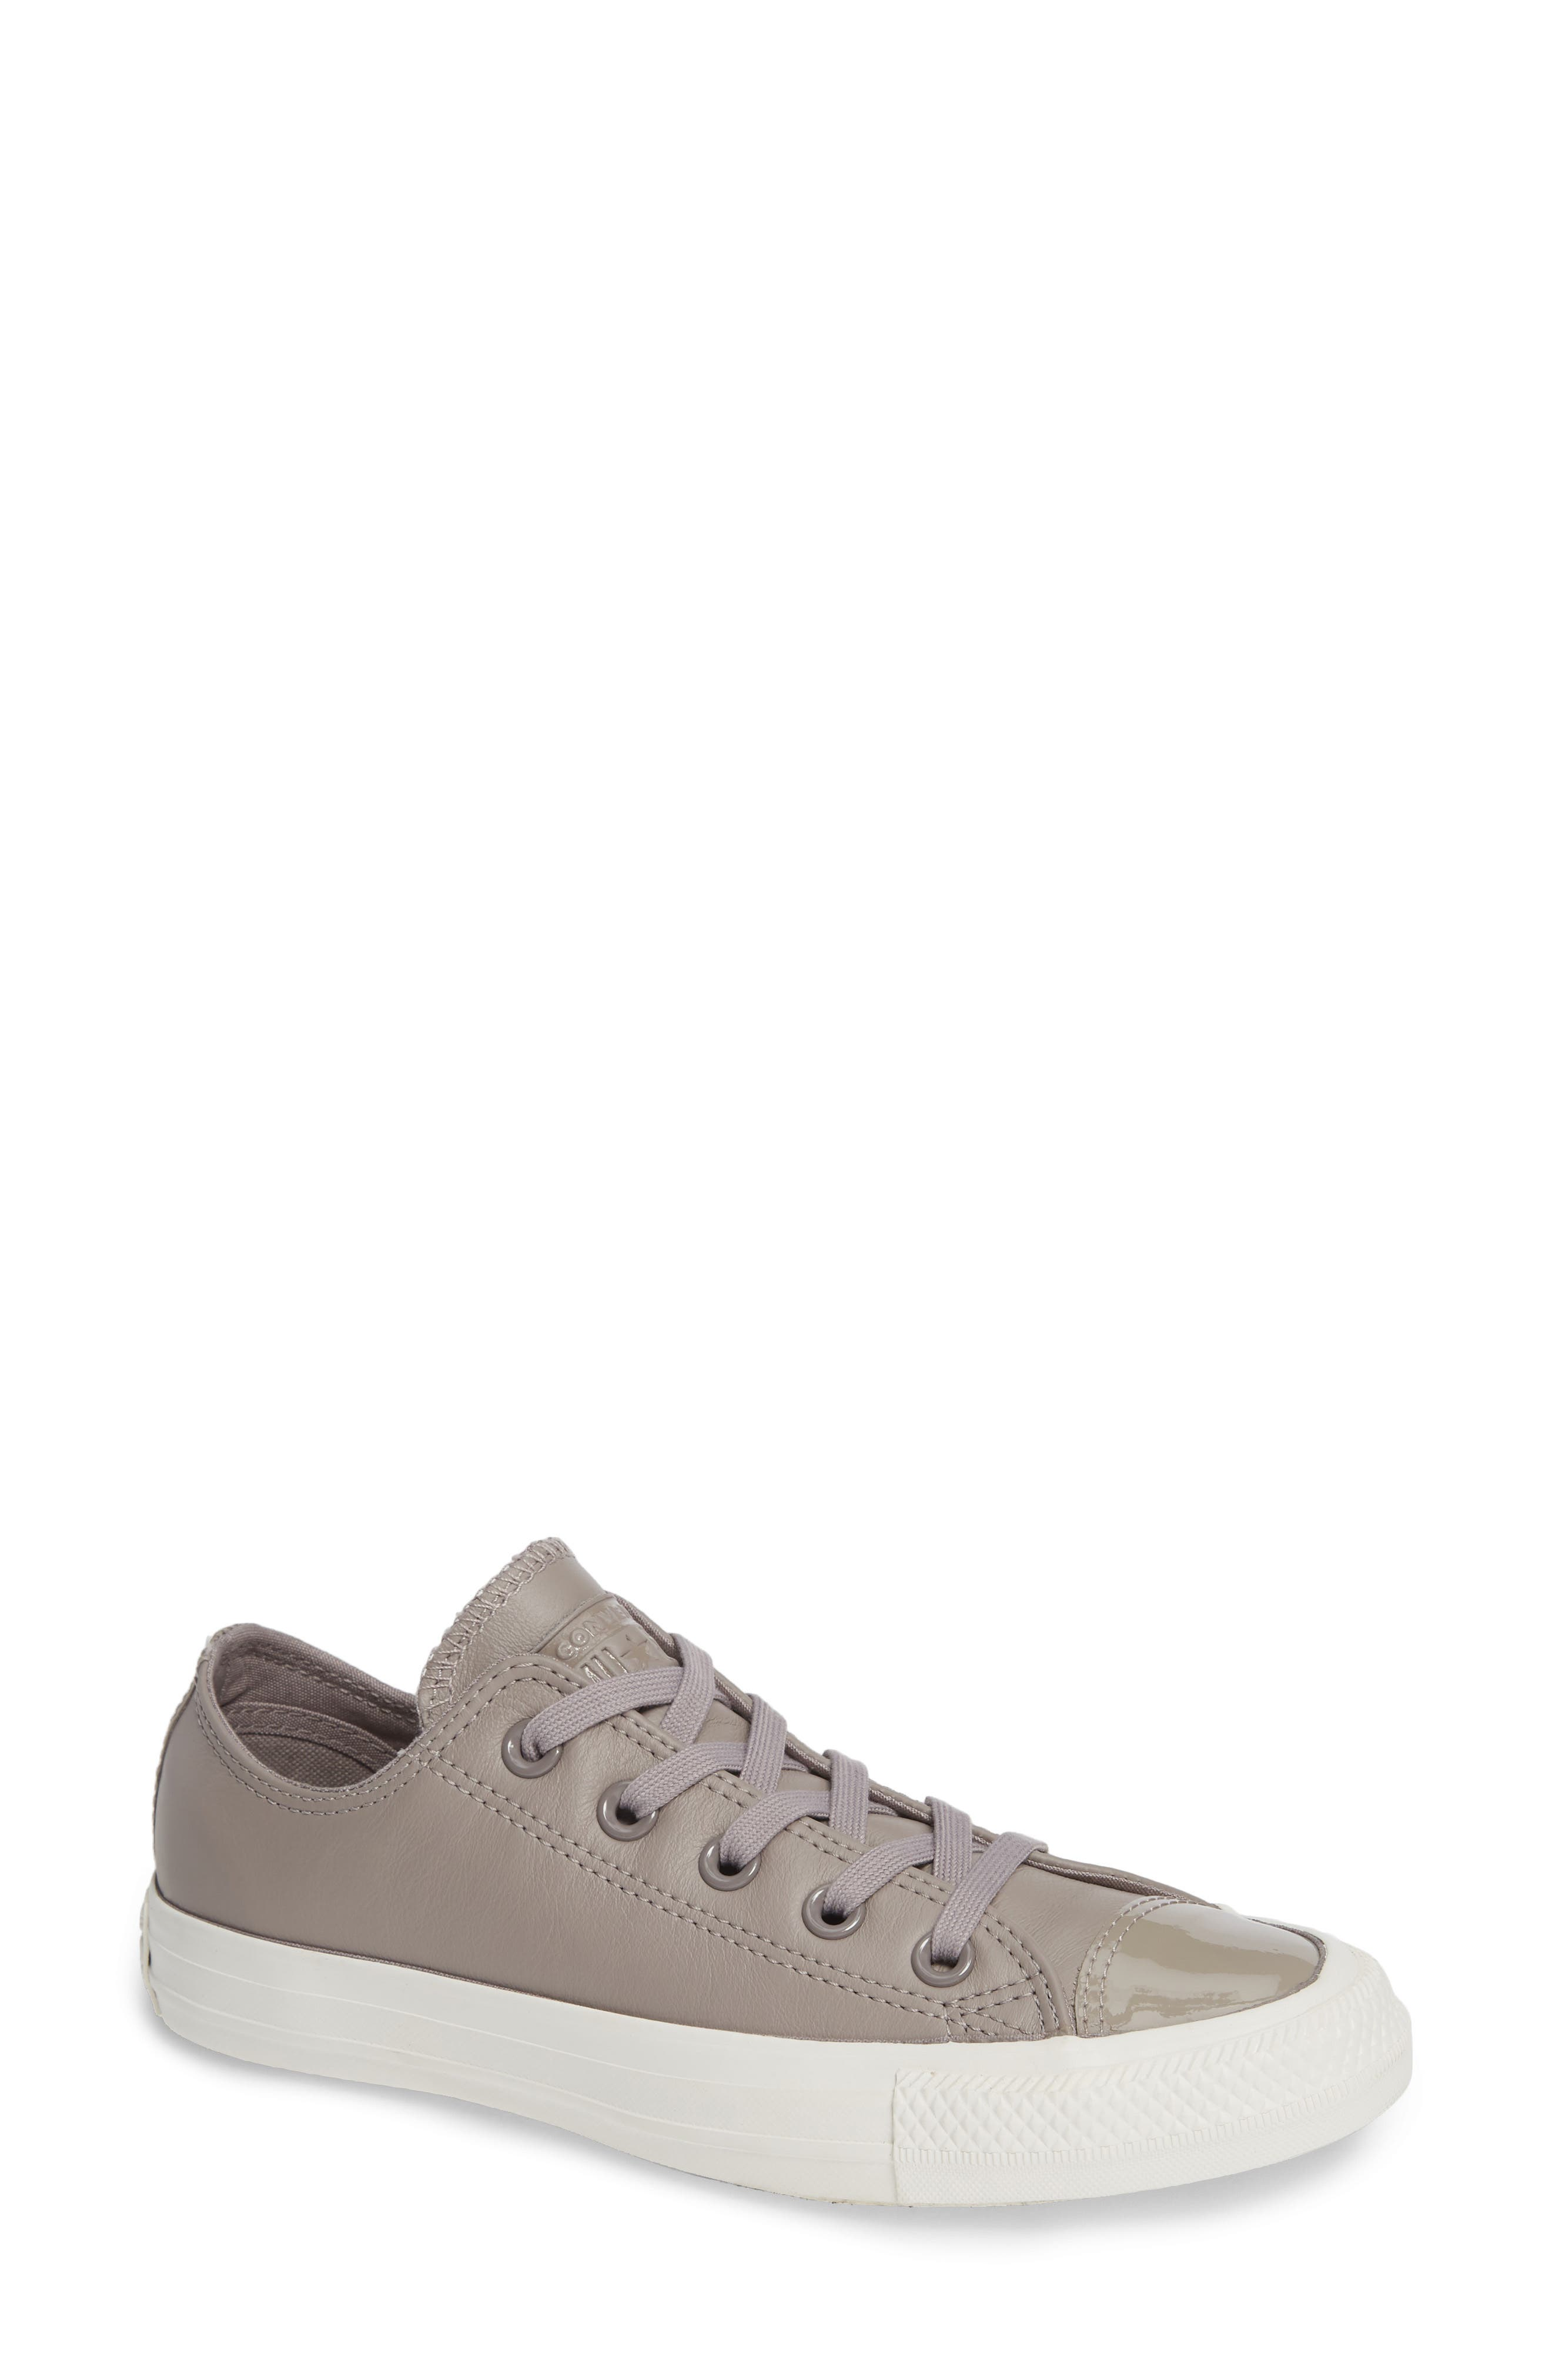 converse leather sneakers